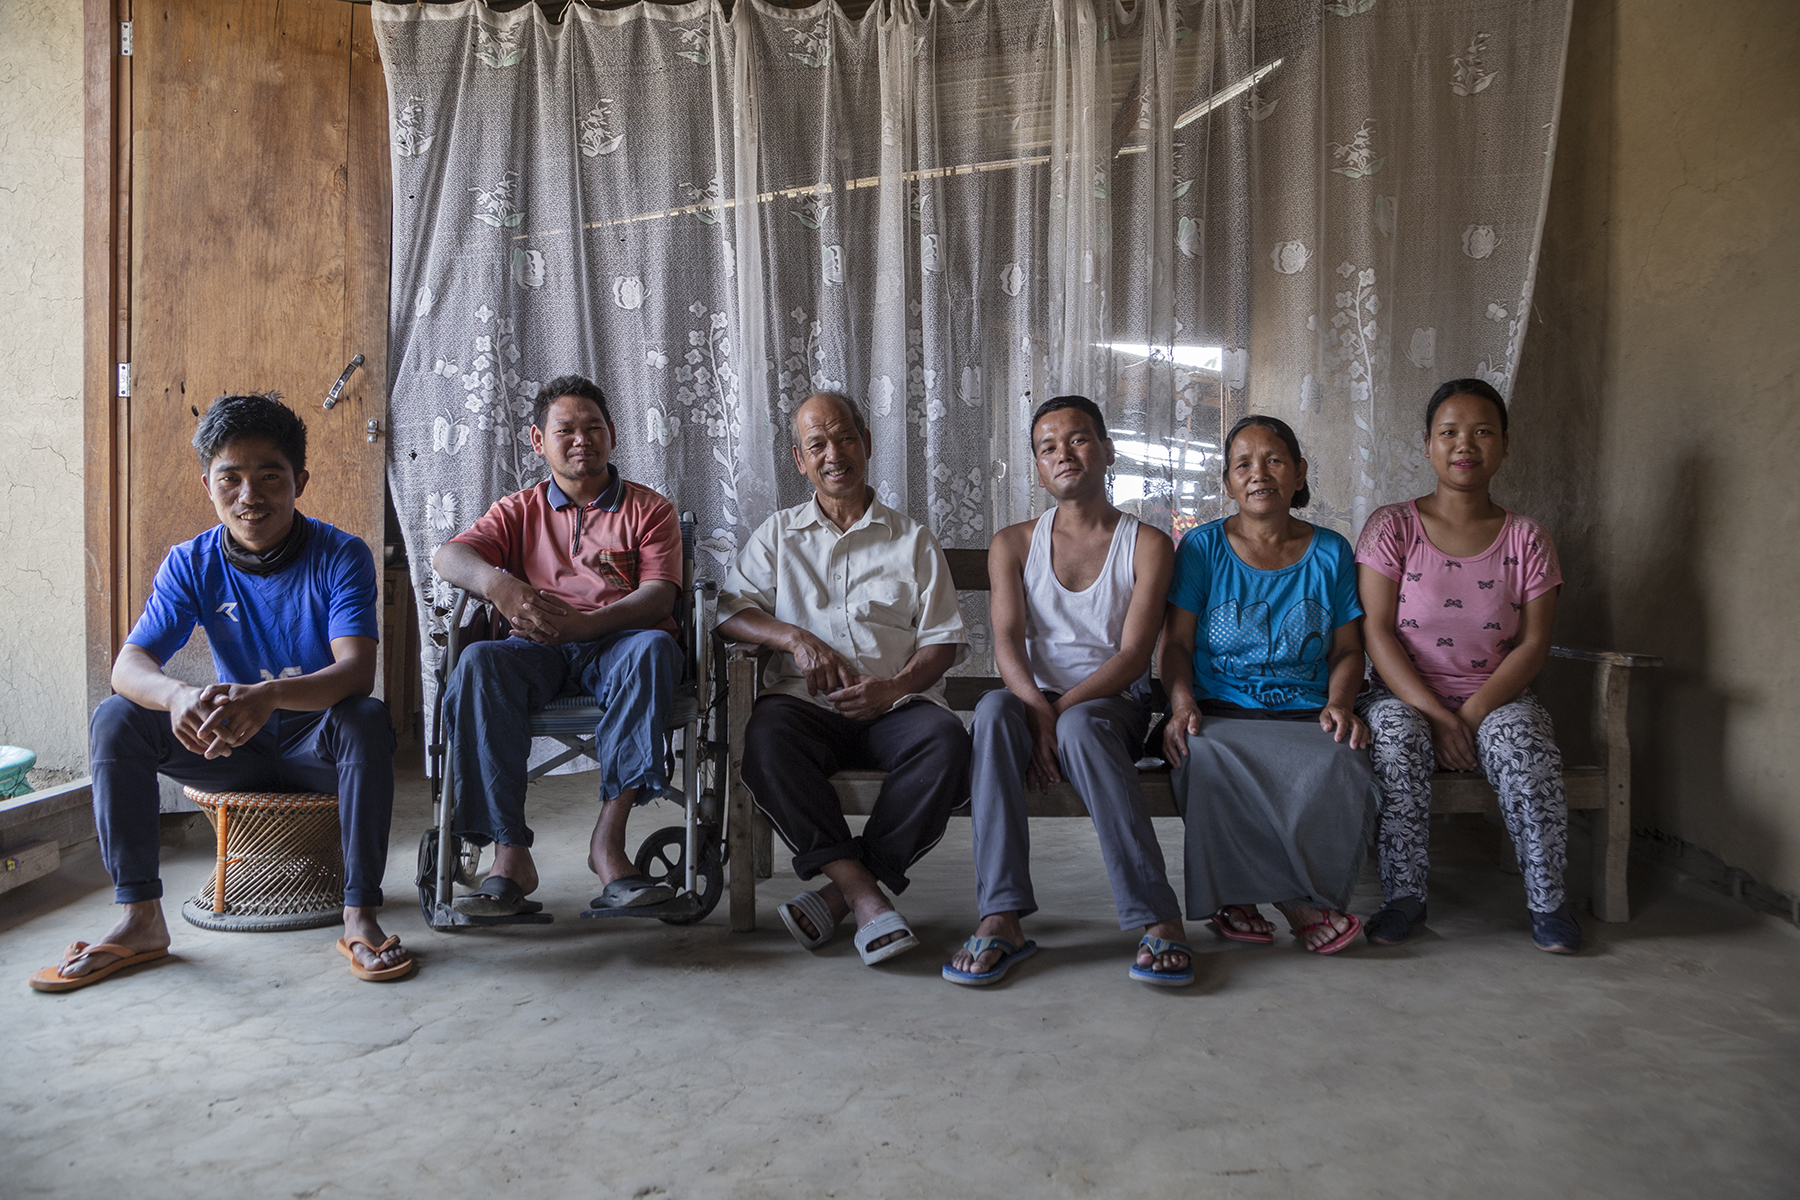 Sohkho poses with his family in a room with a mud floor and a transparent white curtain as the backdrop. From left to right: His sister's husband Lalminmang (29) wearing a royal blue T-shirt and navy blue pants sit on a bamboo cane moda (stool); Sohkho wearing a red T-shirt and bluish-grey pants sits in his wheelchair; next to him on a long wooden bench are his father Helkhothang (64) in cream half-sleeve shirt and brown pants; elder brother Solenmang (34) in sleeveless white banian (vest) and light grey pants; mother Dimkhoneng (64) in sky-blue T-shirt and grey skirt; and sister Ngaijahat (21) in pink T-shirt and grey pants.